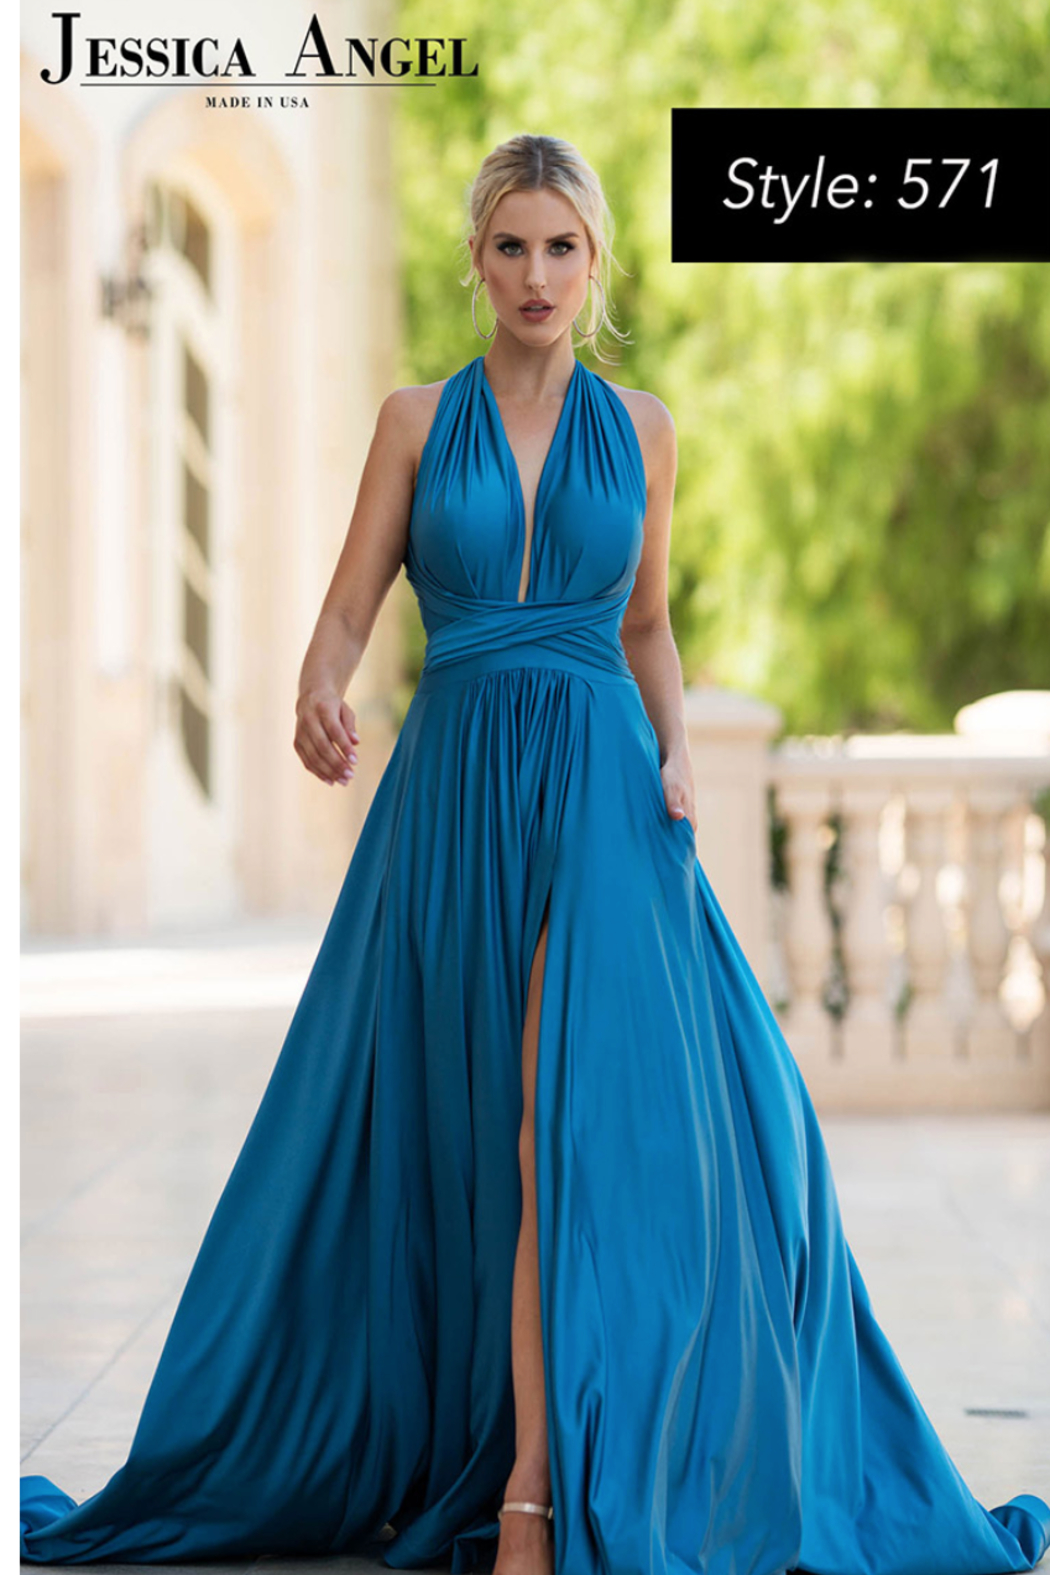 Jessica Angel Gown 571 - Main Image